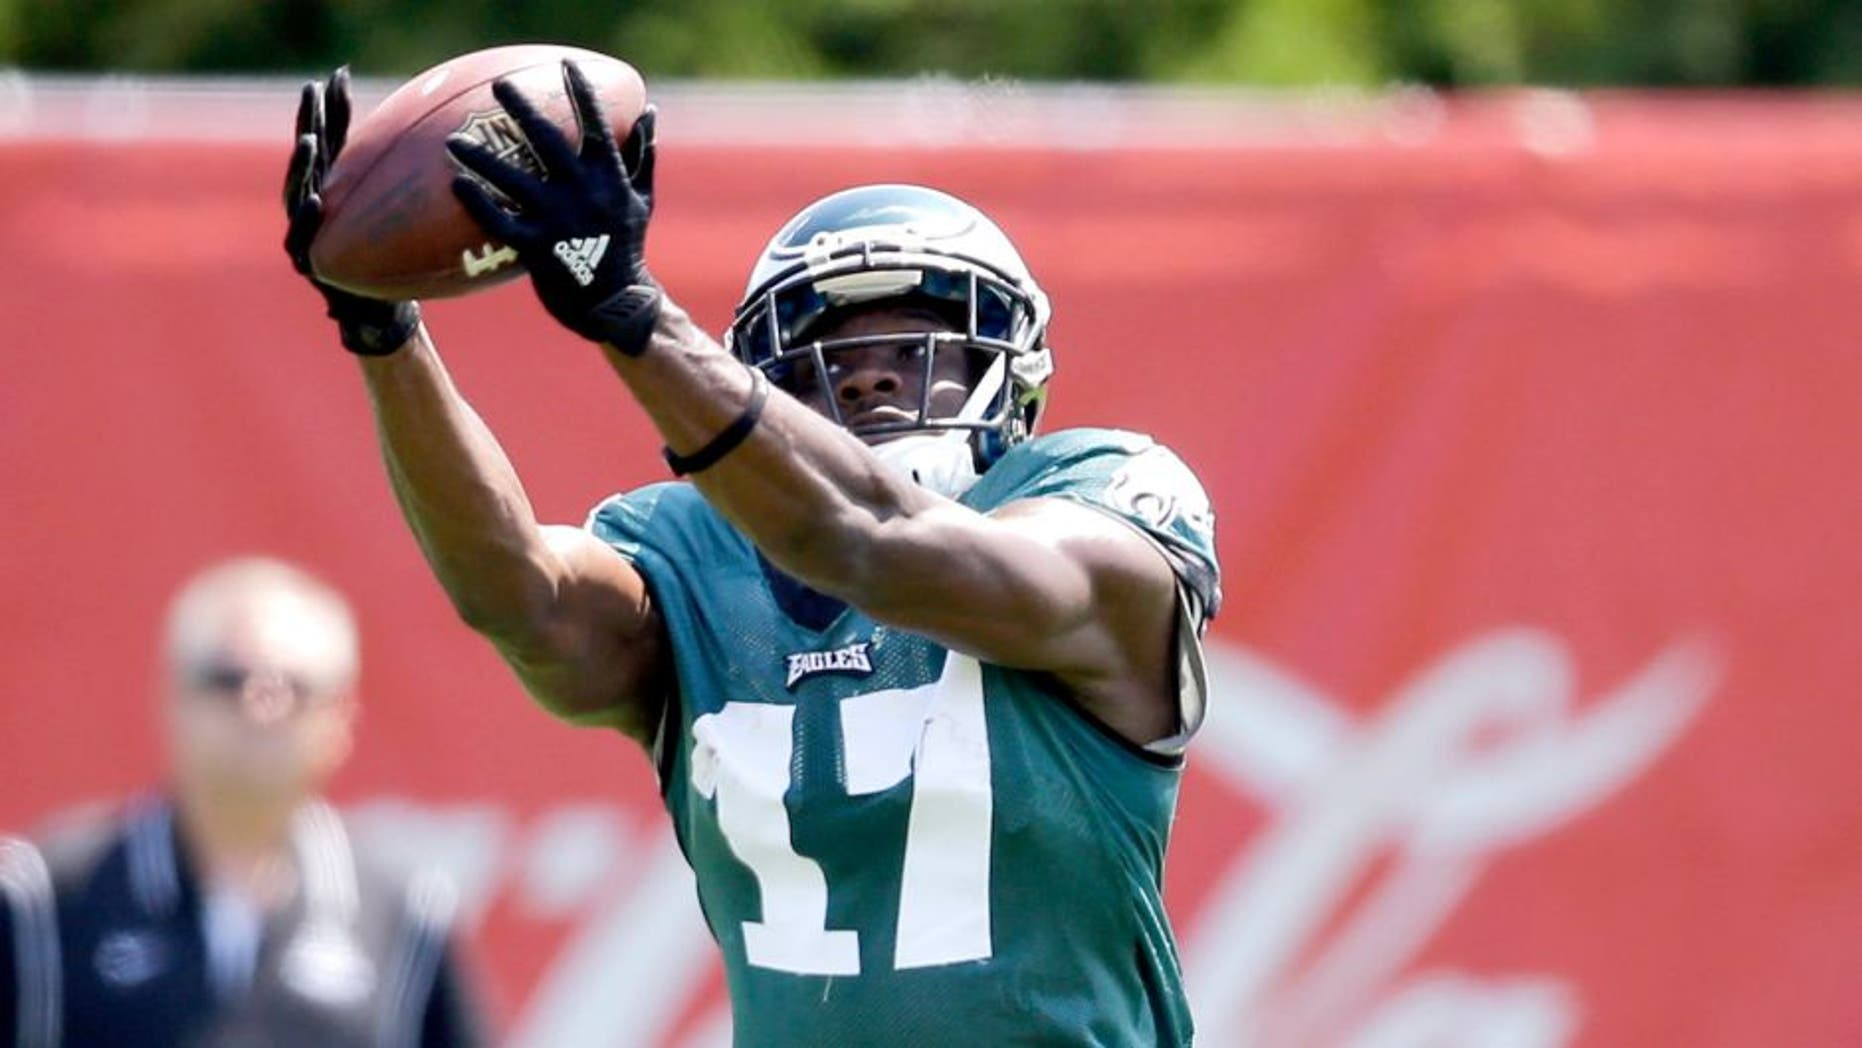 Philadelphia Eagles' Nelson Agholor catches a pass during practice at NFL football training camp, Friday, Aug. 7, 2015, in Philadelphia. (AP Photo/Matt Rourke)